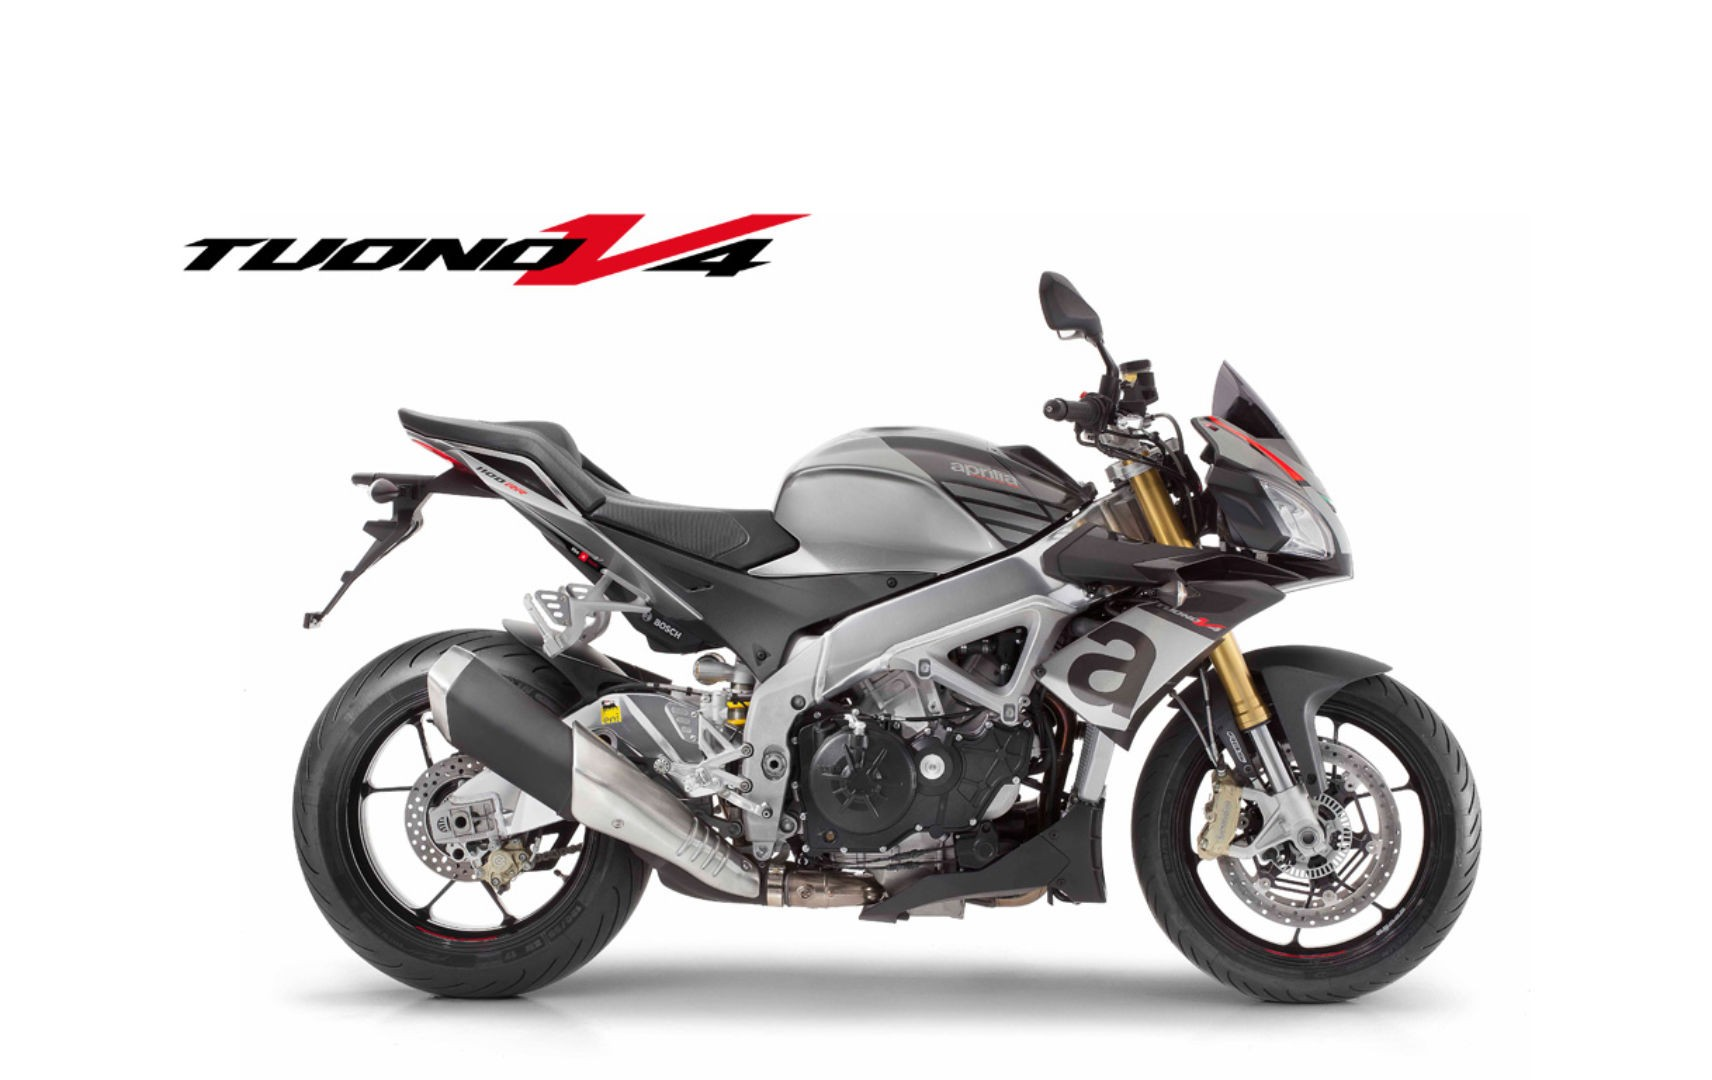 Tuono Products For 1100 V4 R amp;g RacingAll Aprilia H29IYWED